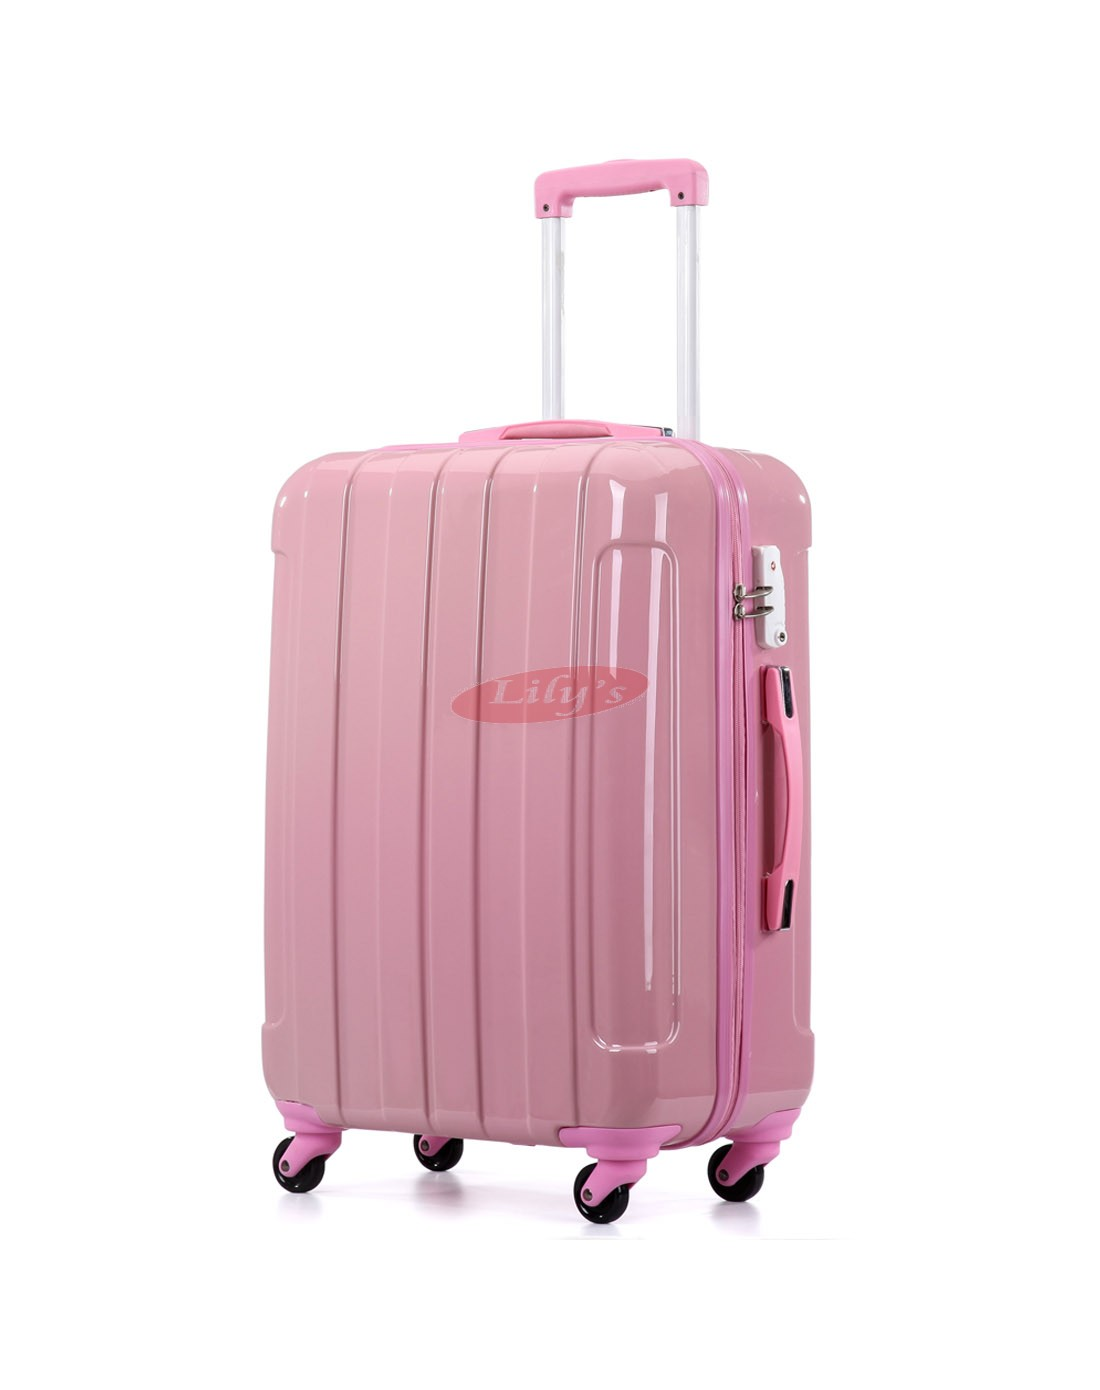 "AIRCROSS 3PC Set Luggage i30 pink Hard Case Trolley Luggage - 19""23""& 26"""